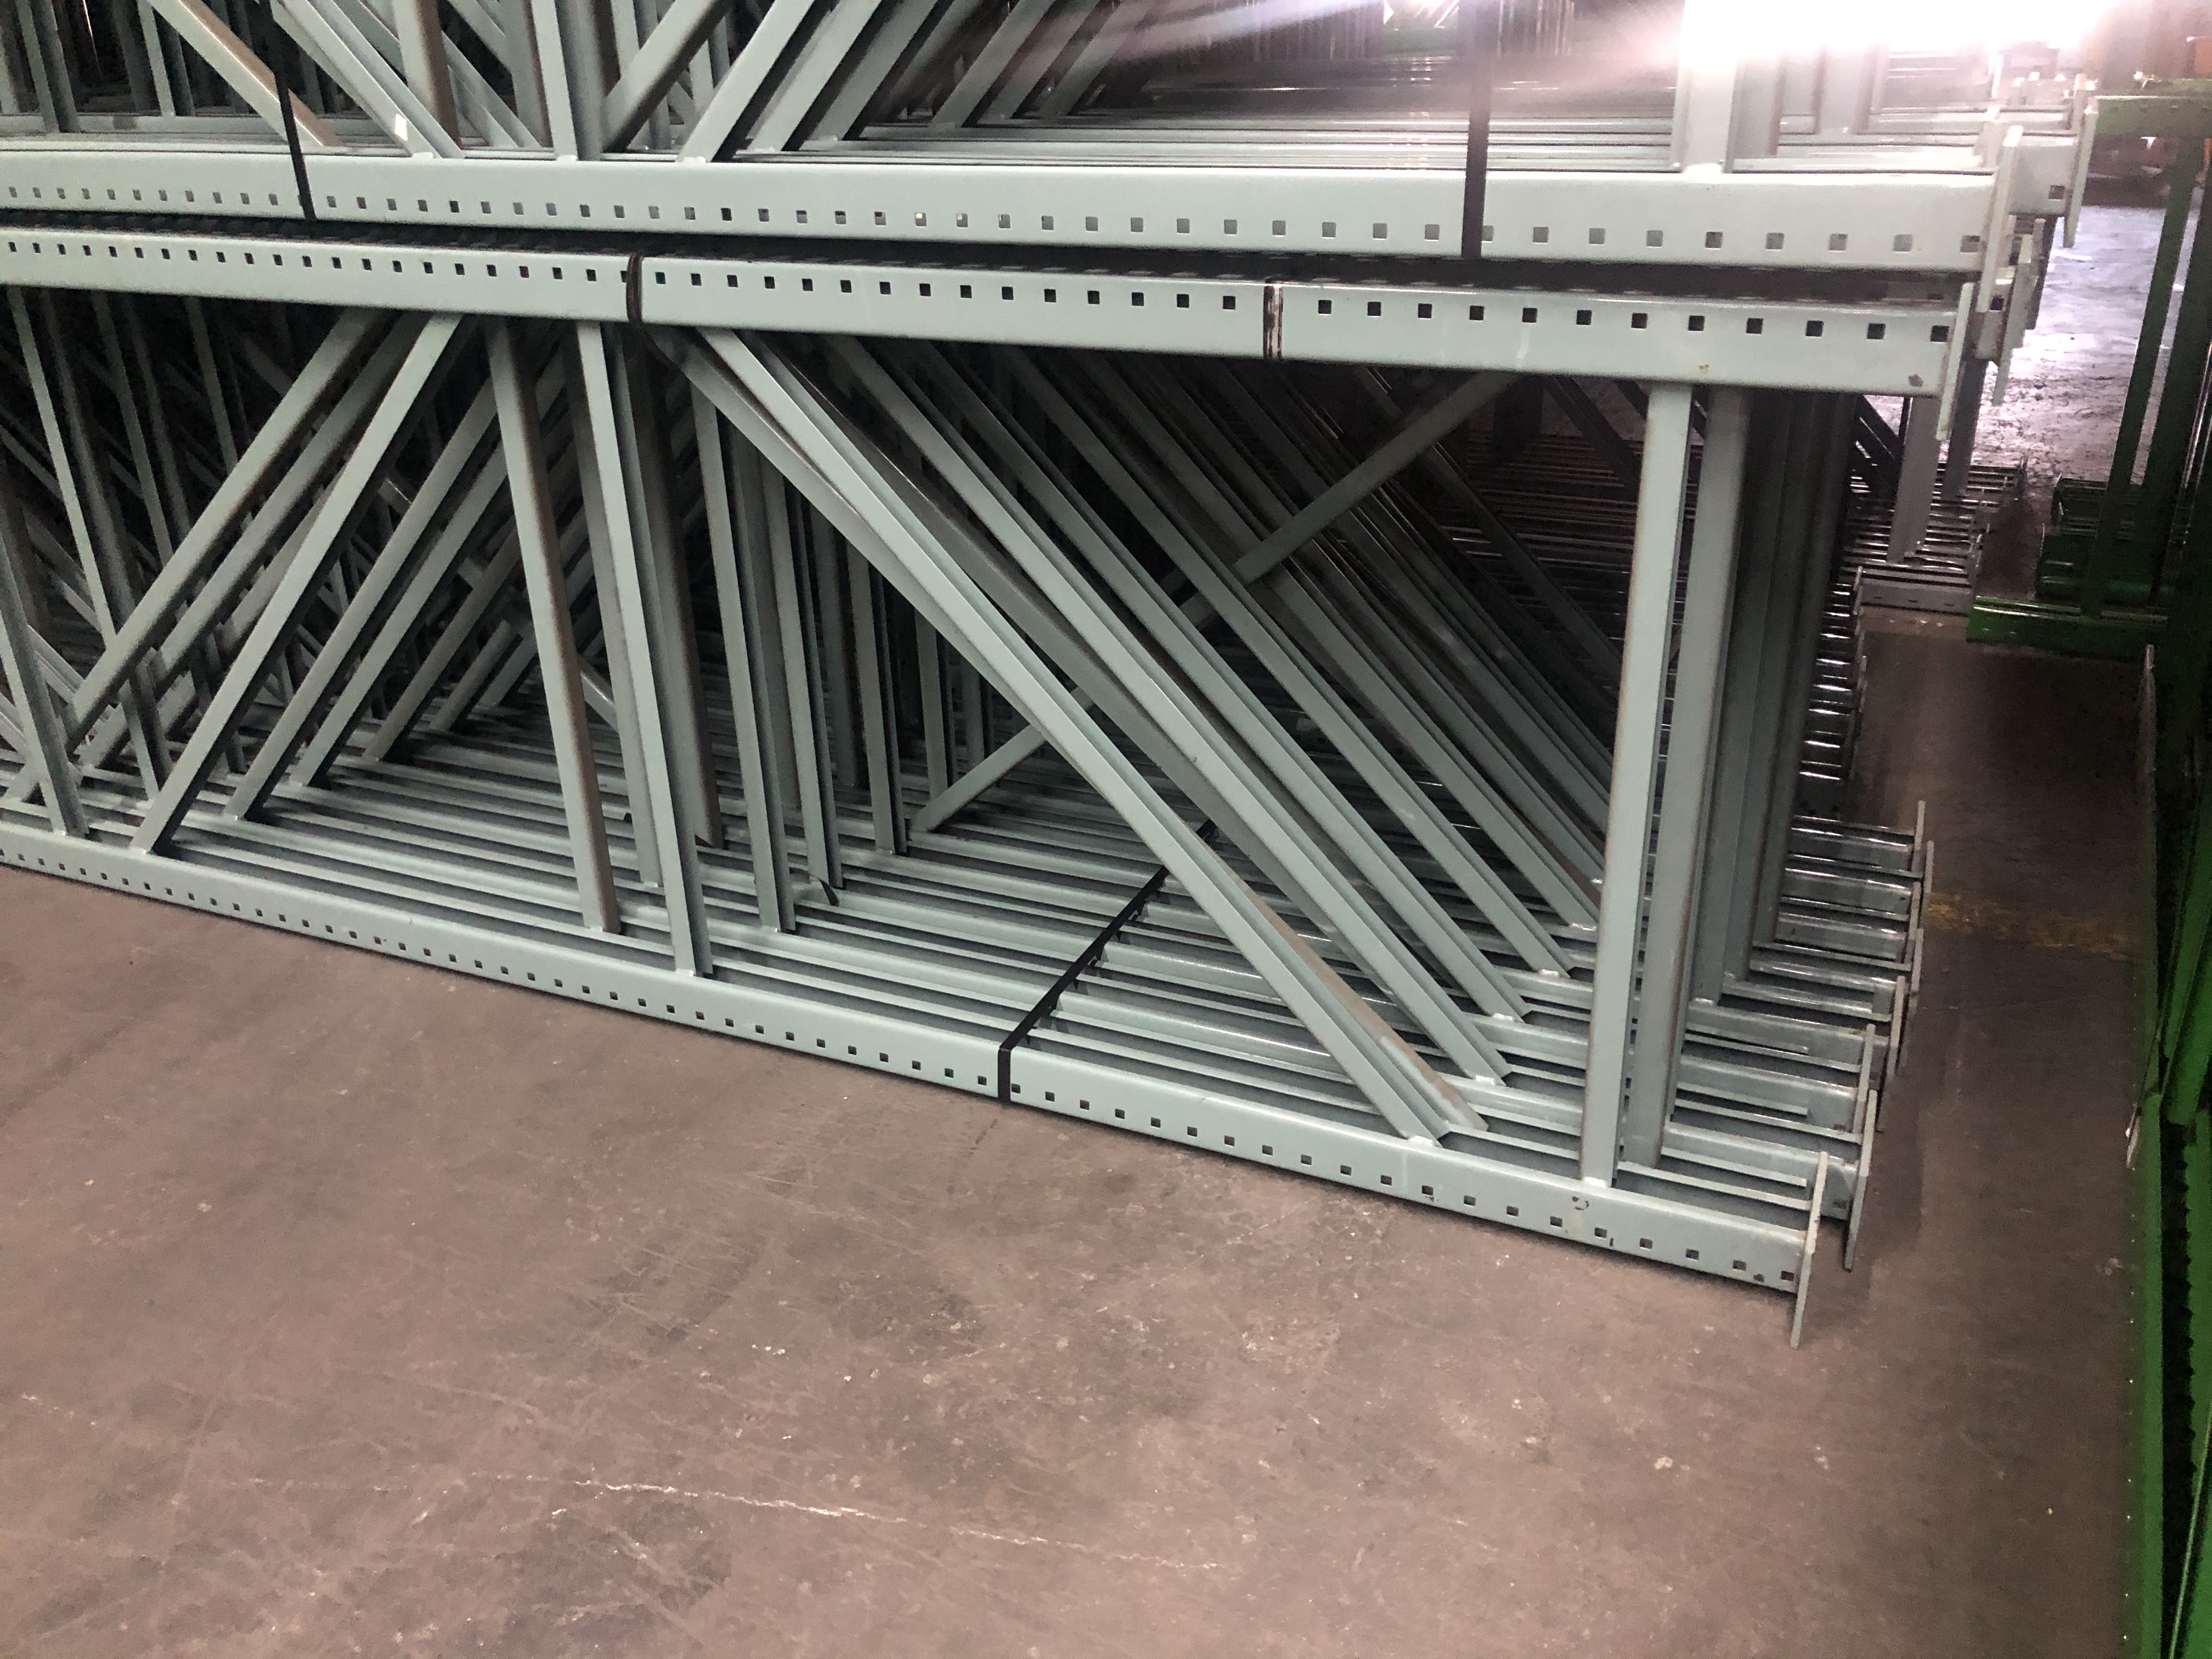 """Lot 9 - 11 BAYS OF 20'H X 42""""D X 96""""L USED TEARDROP STYLE PALLET RACKS WITH UNEX SPAN TRACK FLOW RAILS"""